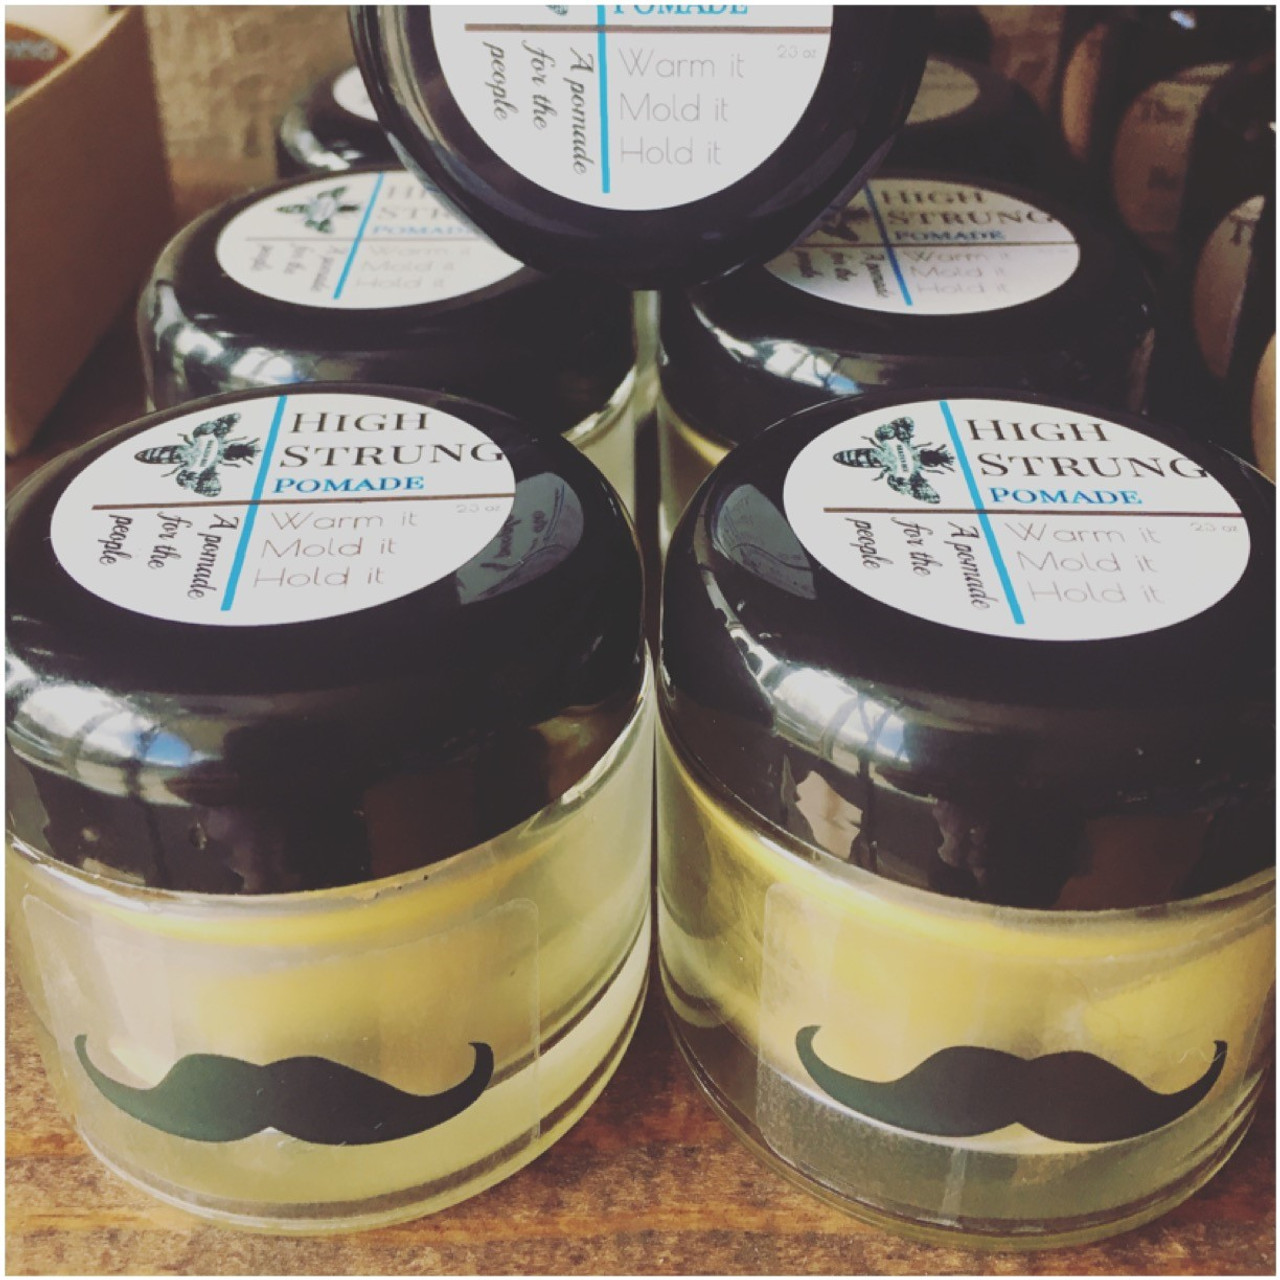 High Strung Pomade: Chemical Free, No silicon, No petroleum products or by-products. High hold.